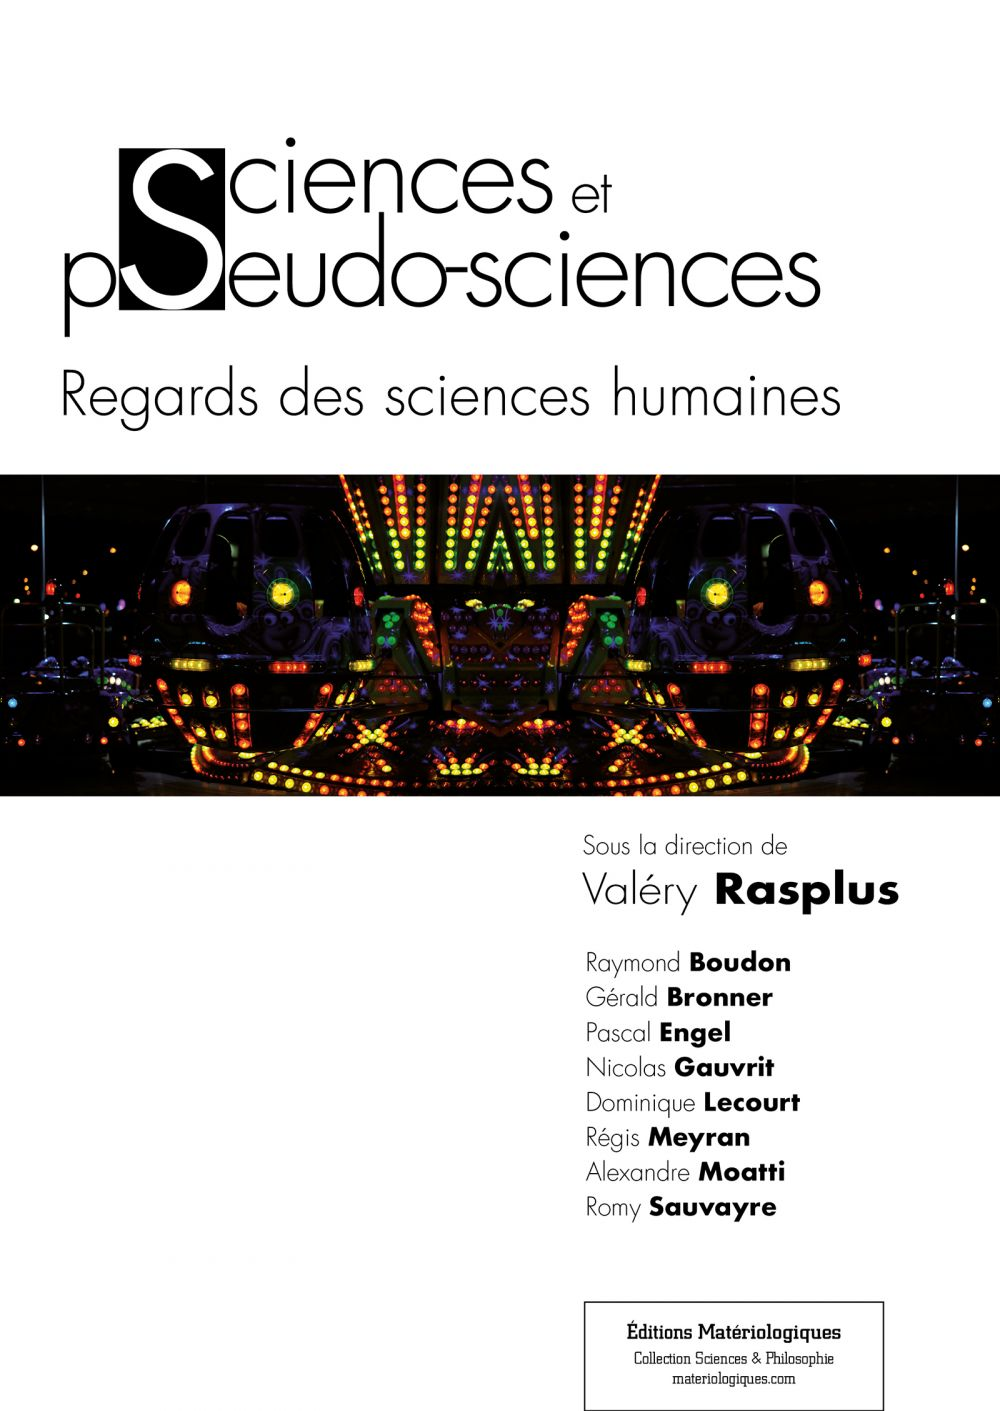 Sciences et pseudo-sciences